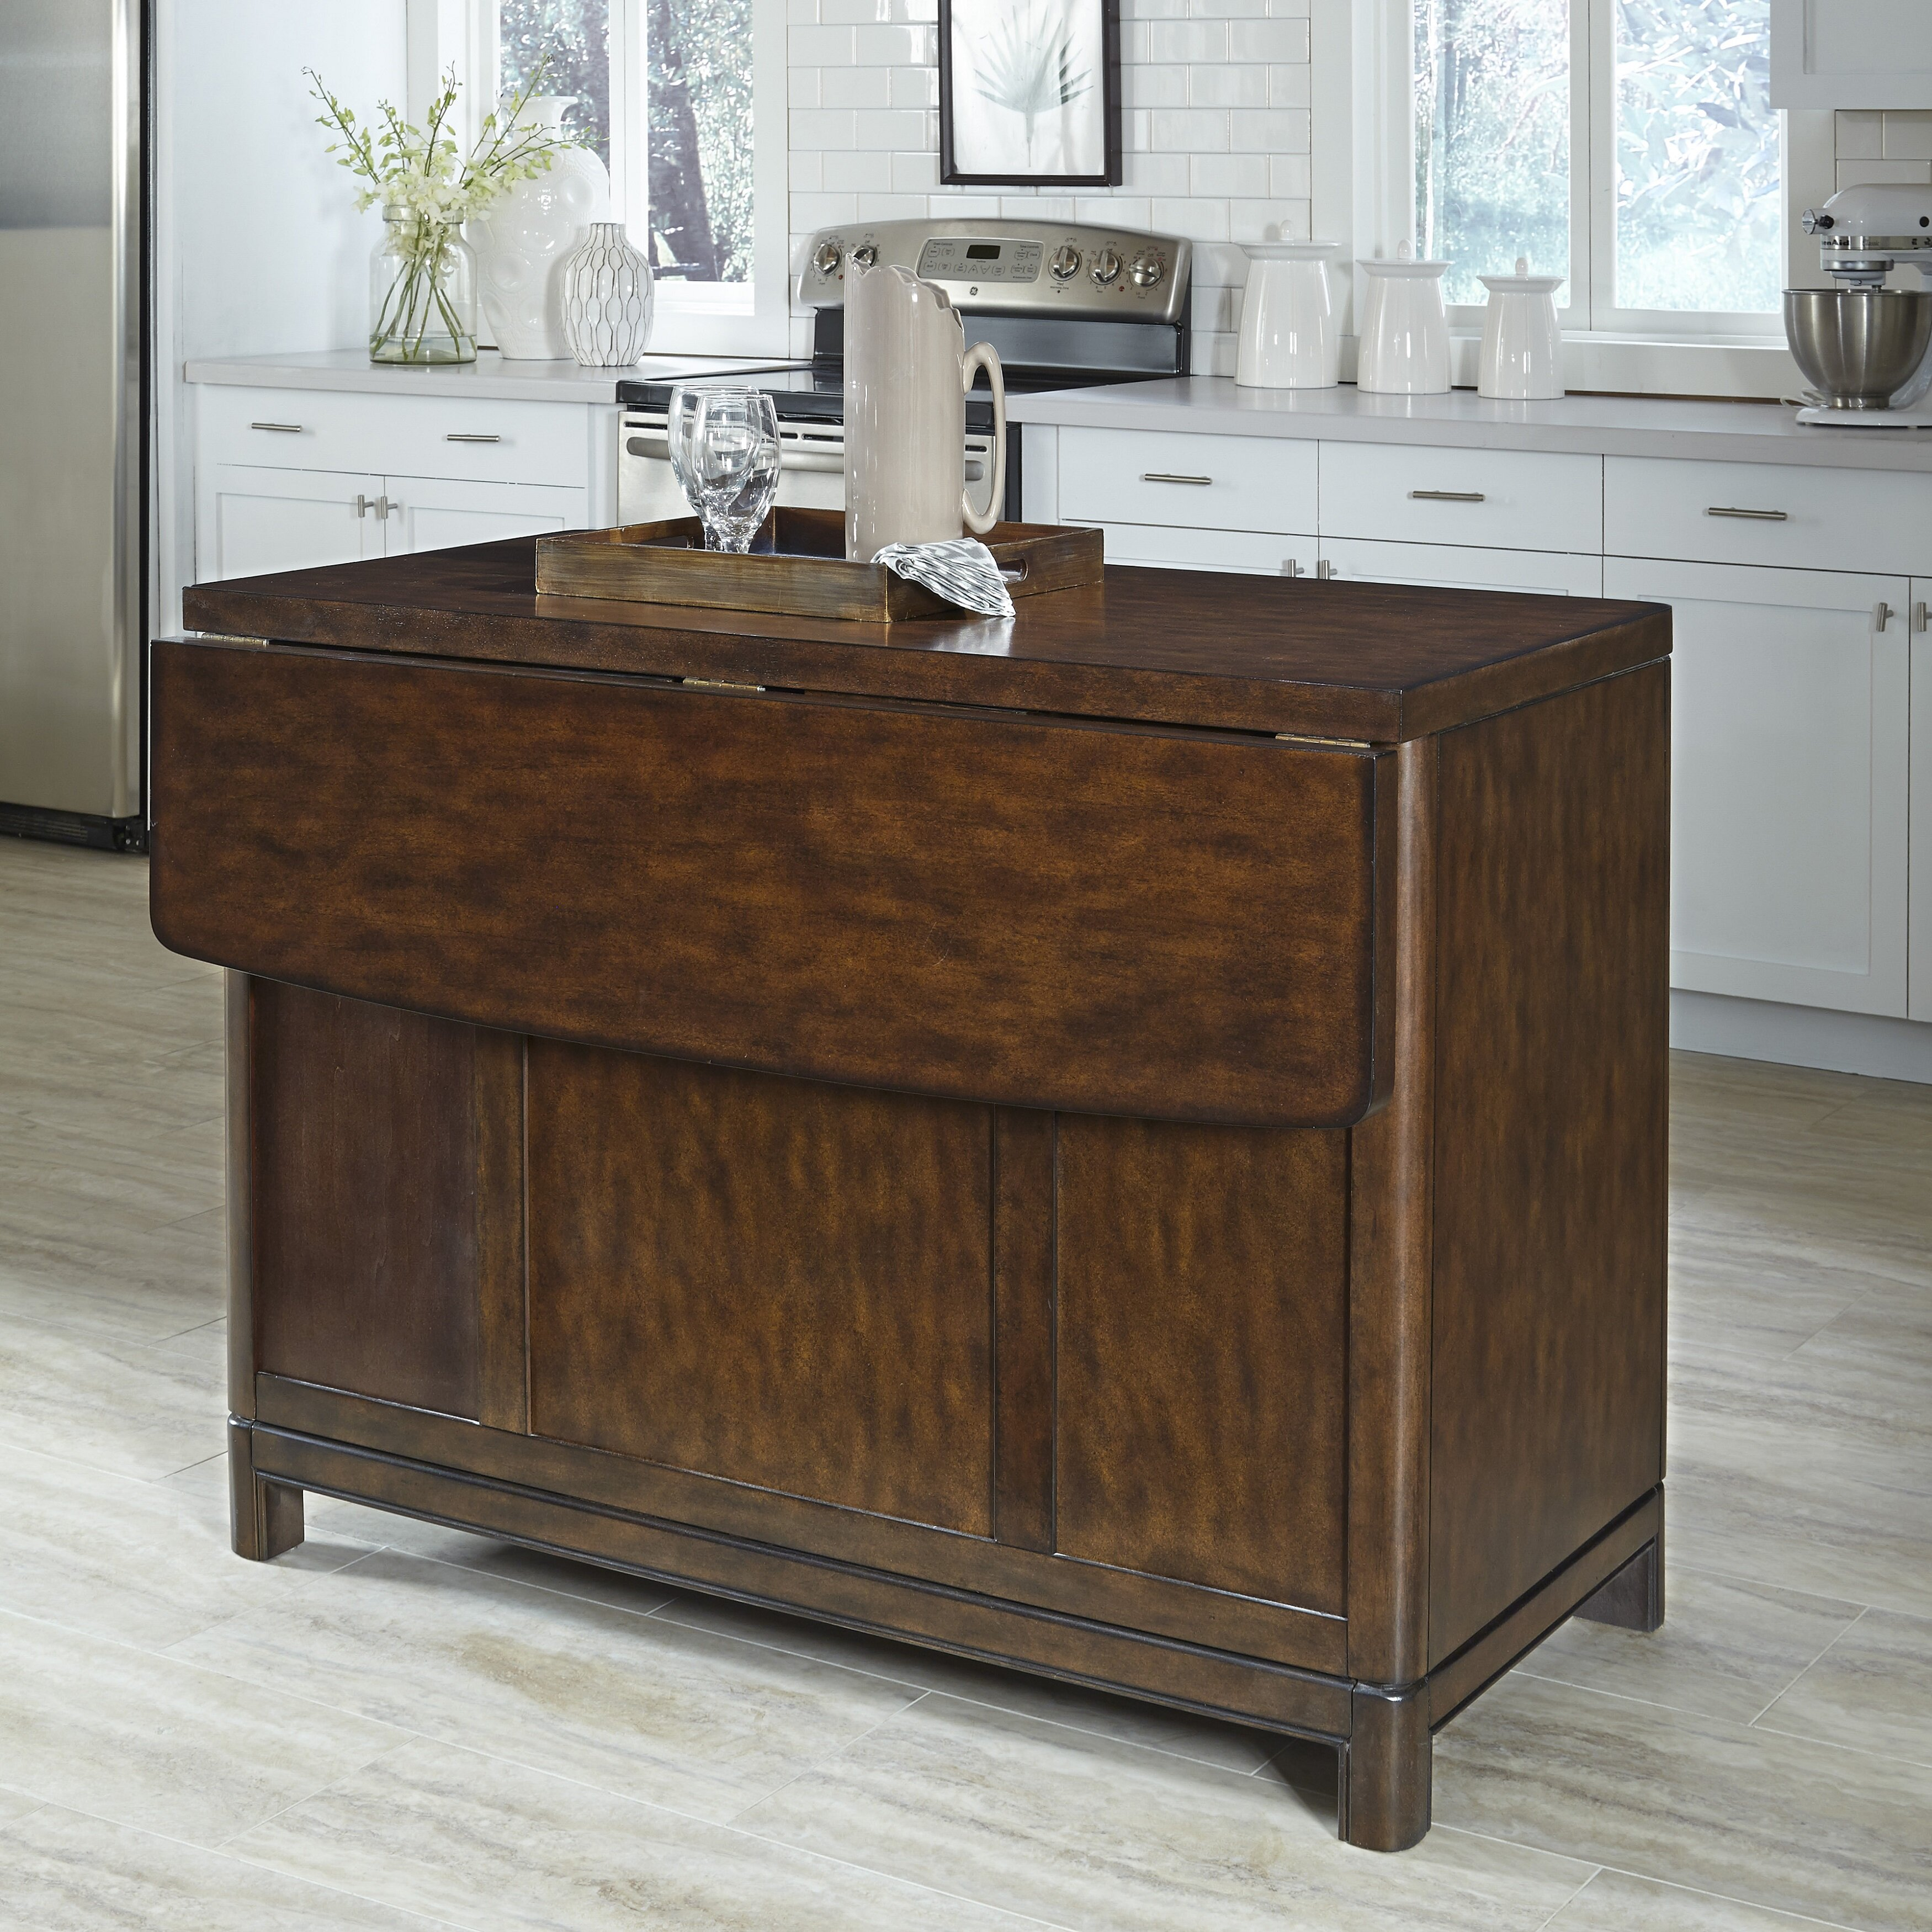 home styles kitchen island home styles crescent hill kitchen island amp reviews wayfair 4306